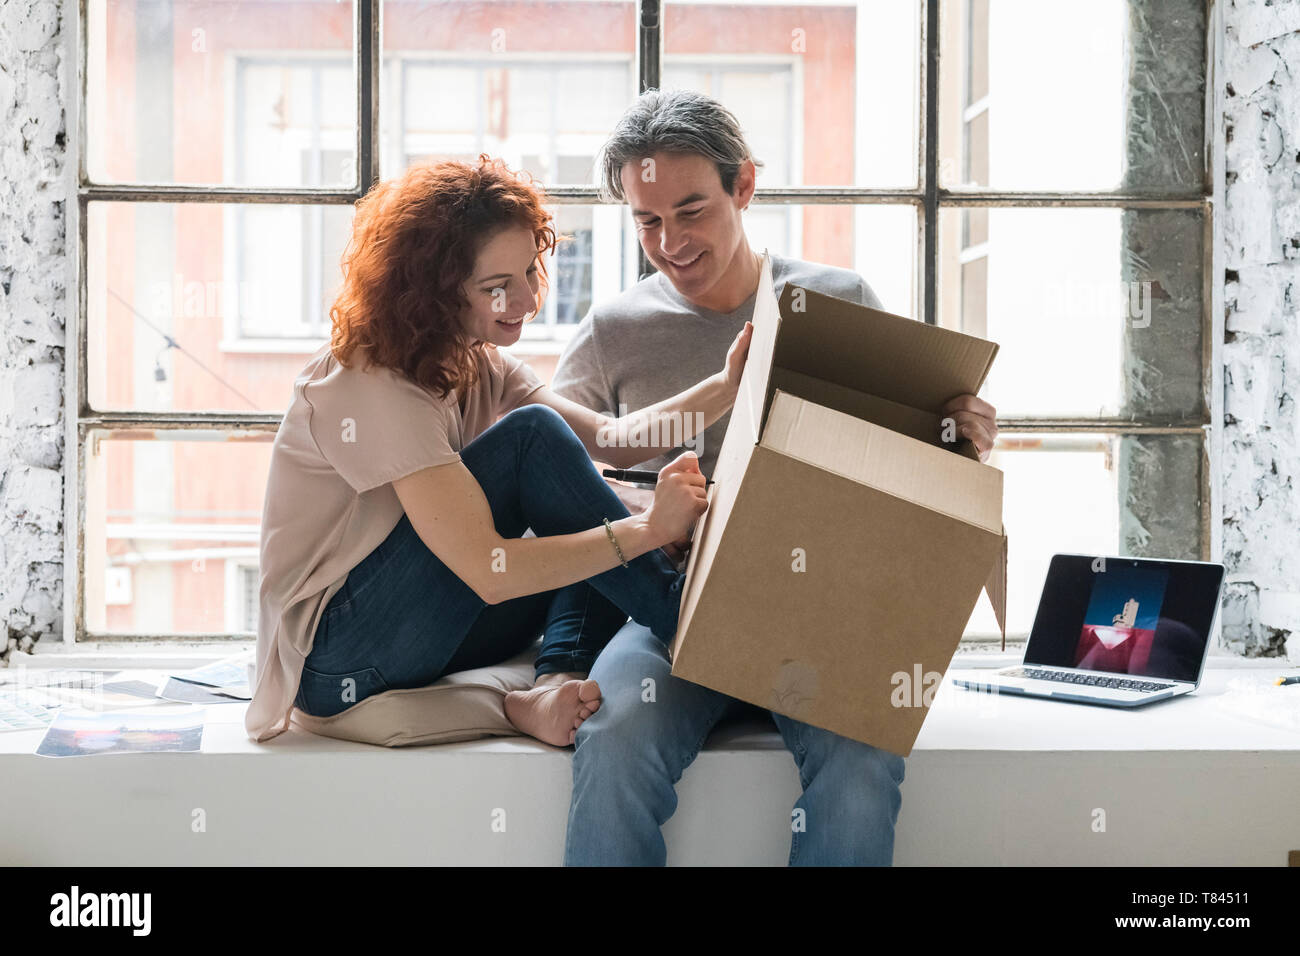 Couple moving into industrial style apartment, sitting on window ledge writing on cardboard box - Stock Image